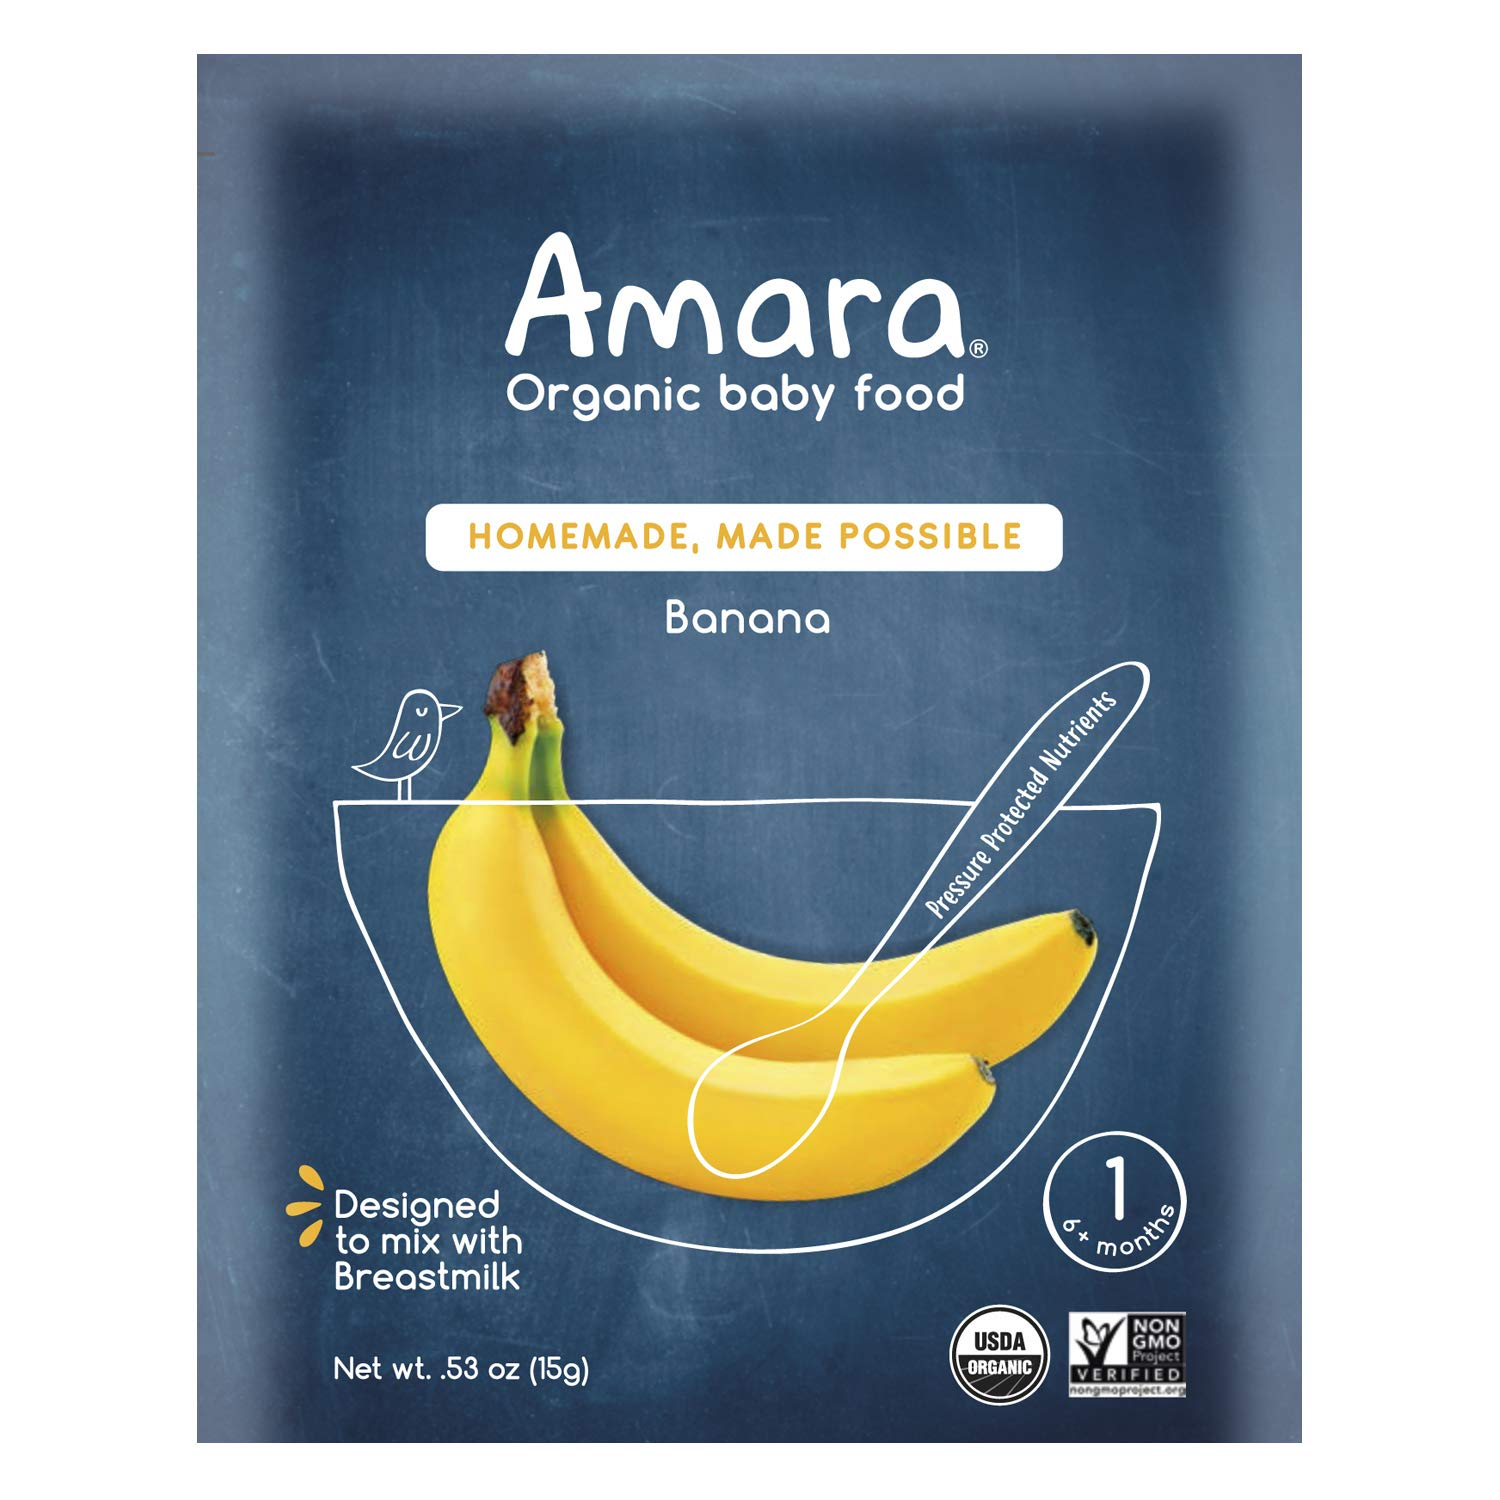 Amara Organic Baby Food | Banana | Homemade Made Possible | Mix with Breastmilk, Formula or Water | Certified Organic, Non-GMO, No Added Sugars | Stage 1 for Babies 6 Months & Older | 7 Pouches